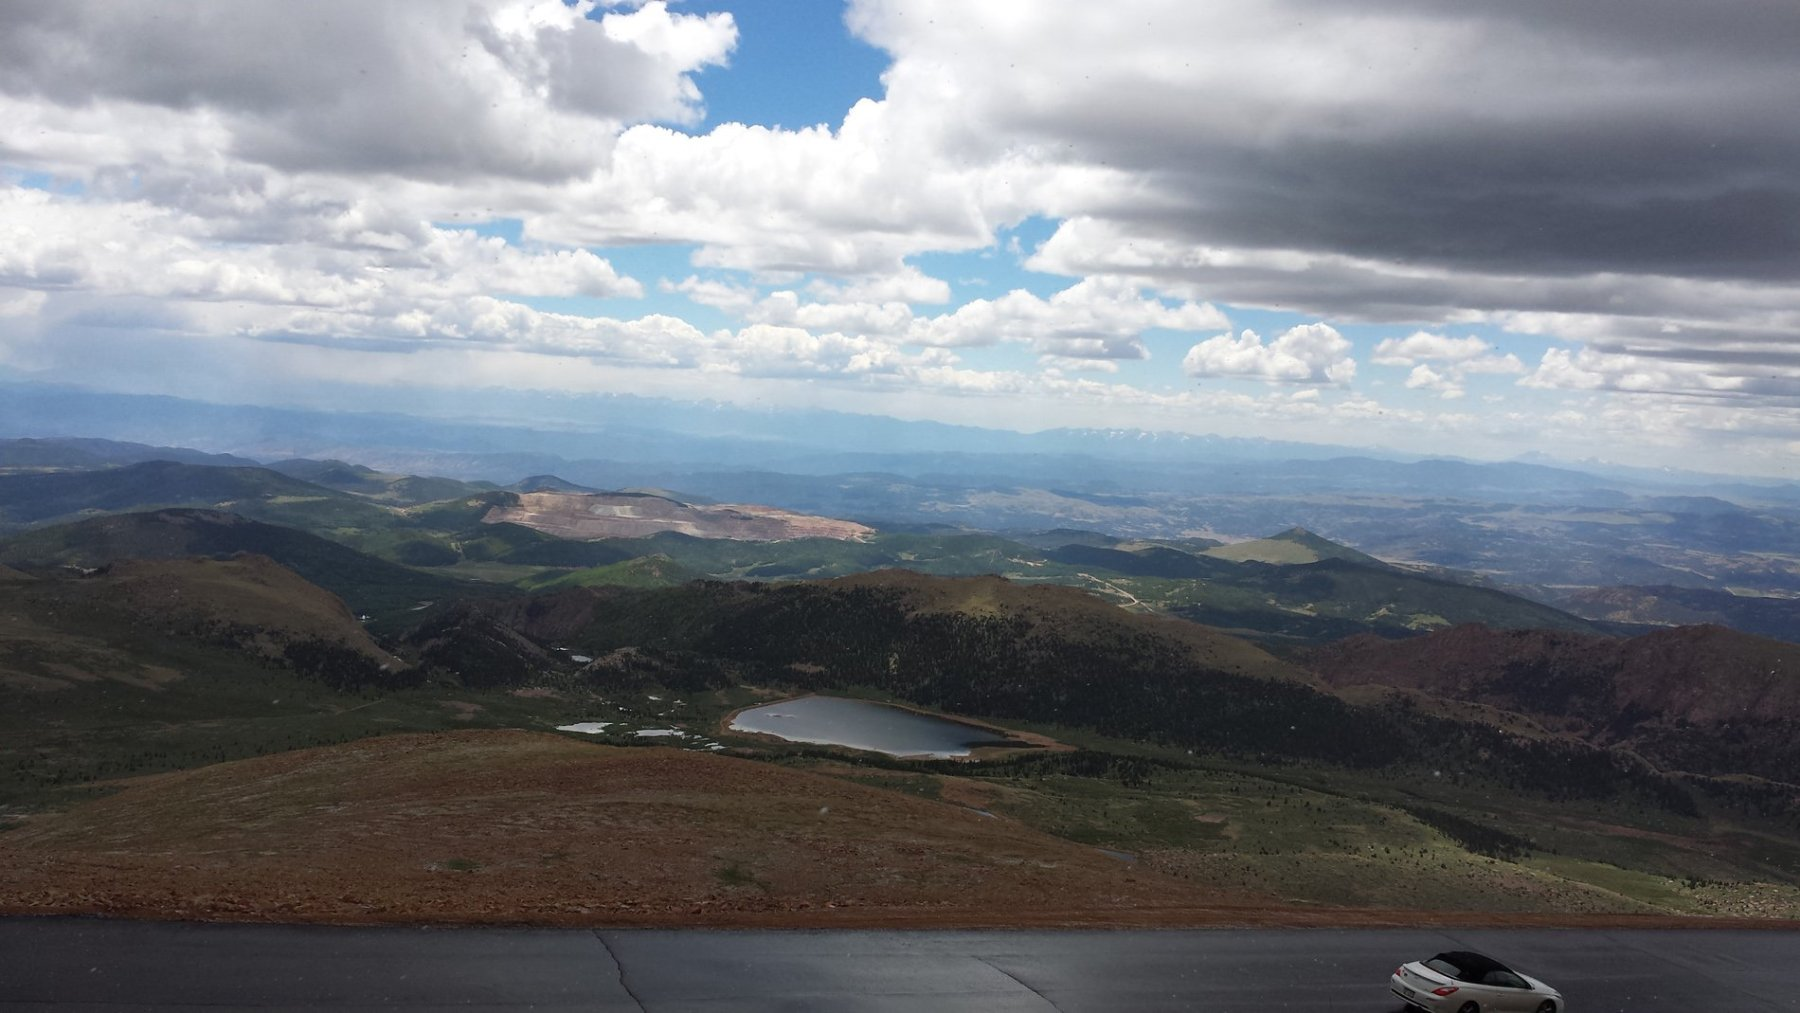 The best view from Pikes Peak are visible on the drive down from the summit. Craigslegz.com